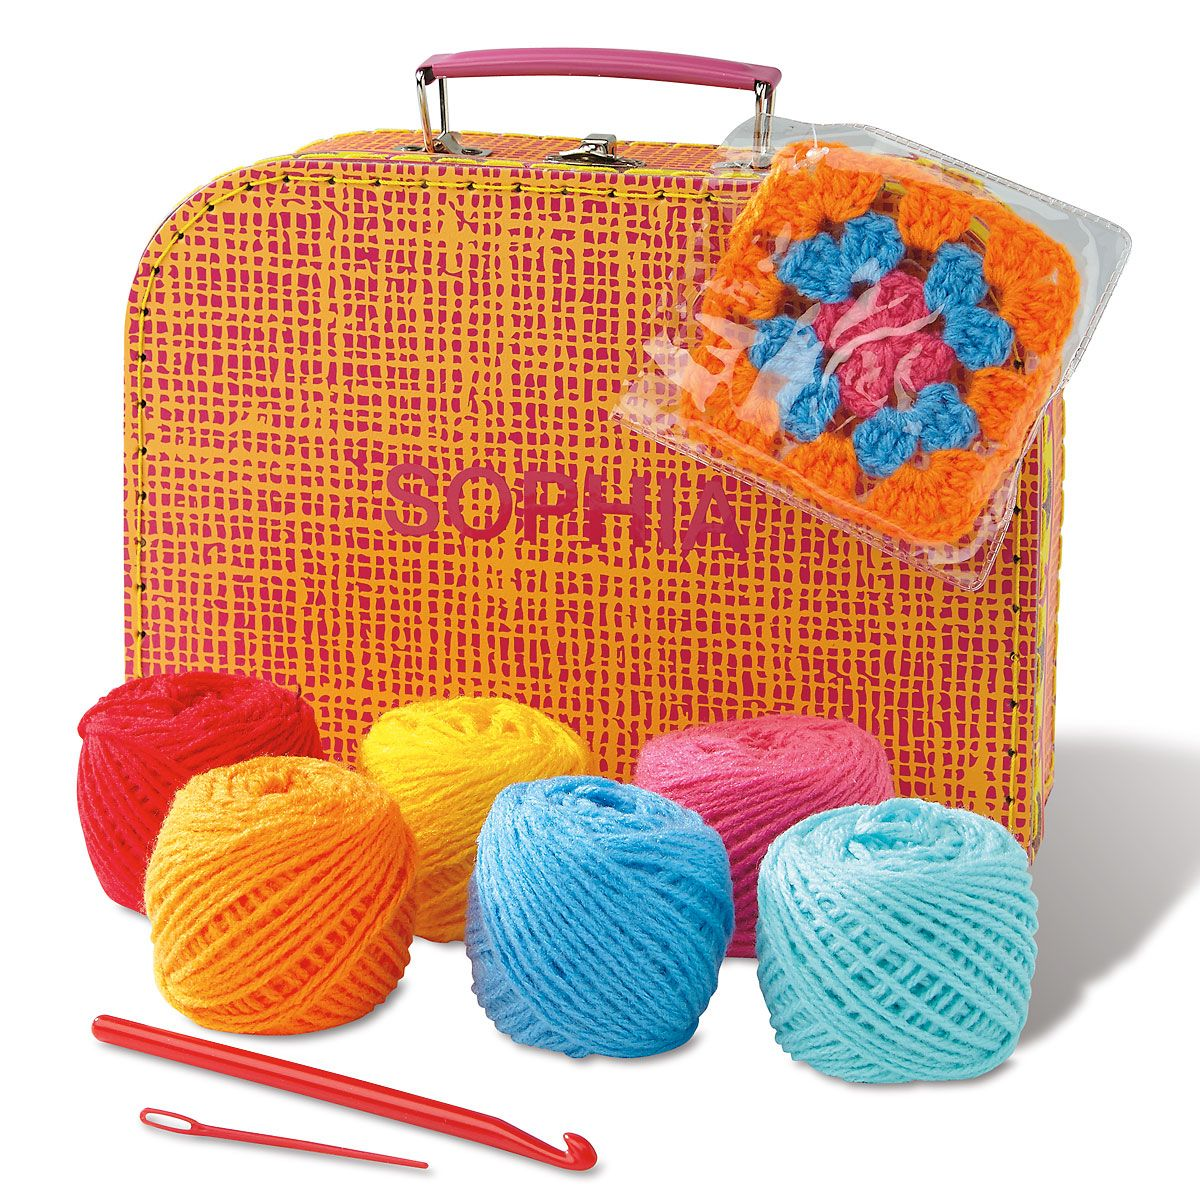 Granny Squares Crochet Kit with Personalized Carrying Case